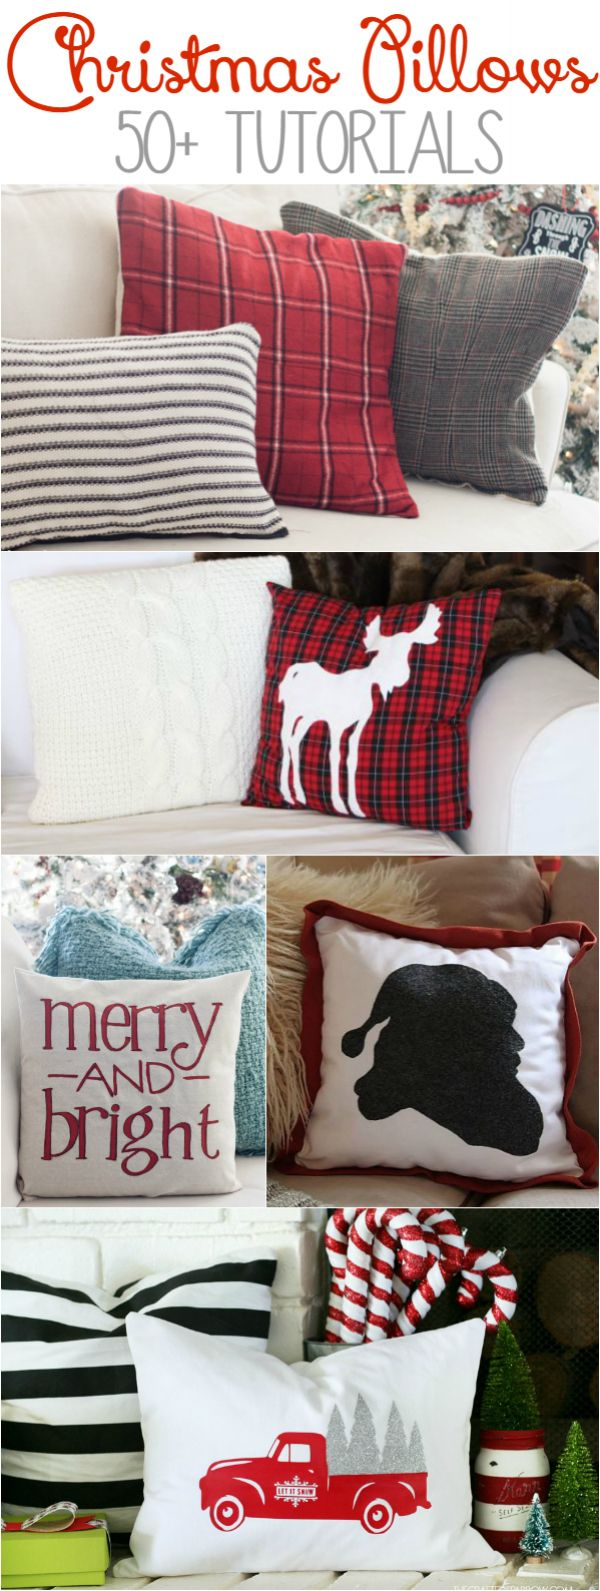 free id running shoes 50  tutorials to all the cute DIY Christmas pillows out there  Lots of step by steps directions for adorable Christmas decor  Great no sew options  painted pillows  lots of styles to choose from